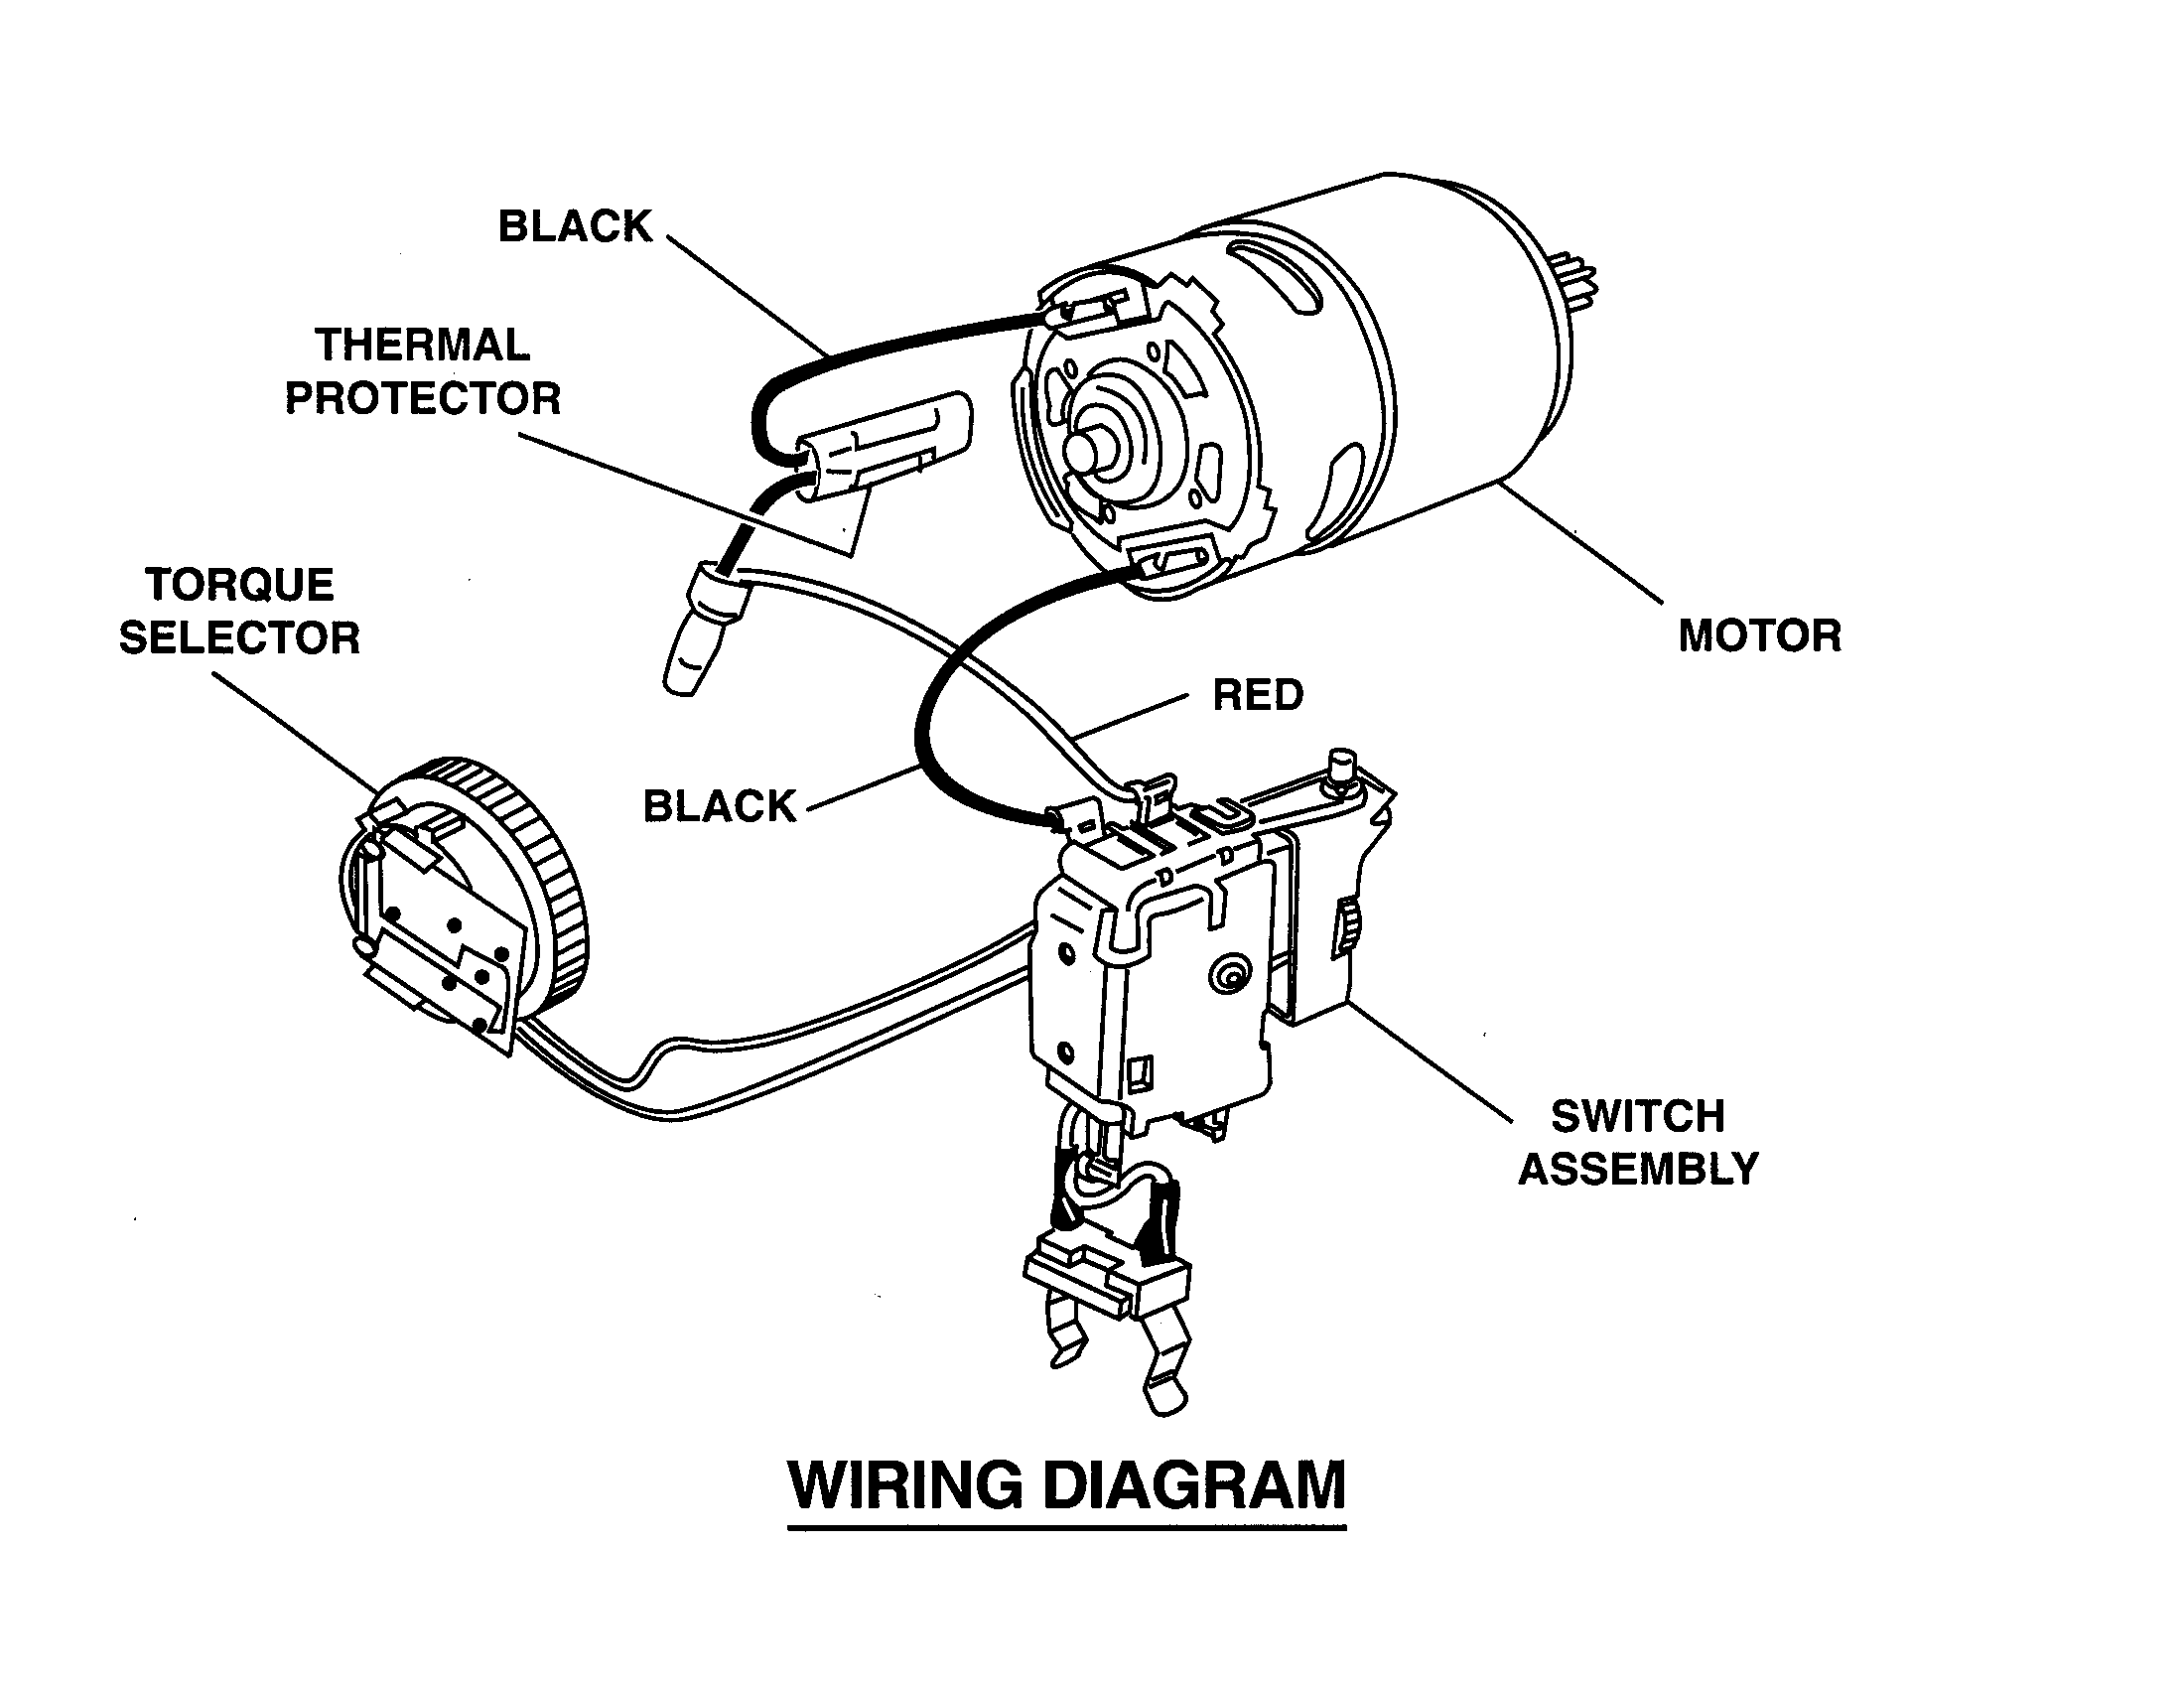 WIRING DIAGRAM Diagram & Parts List for Model 315274910